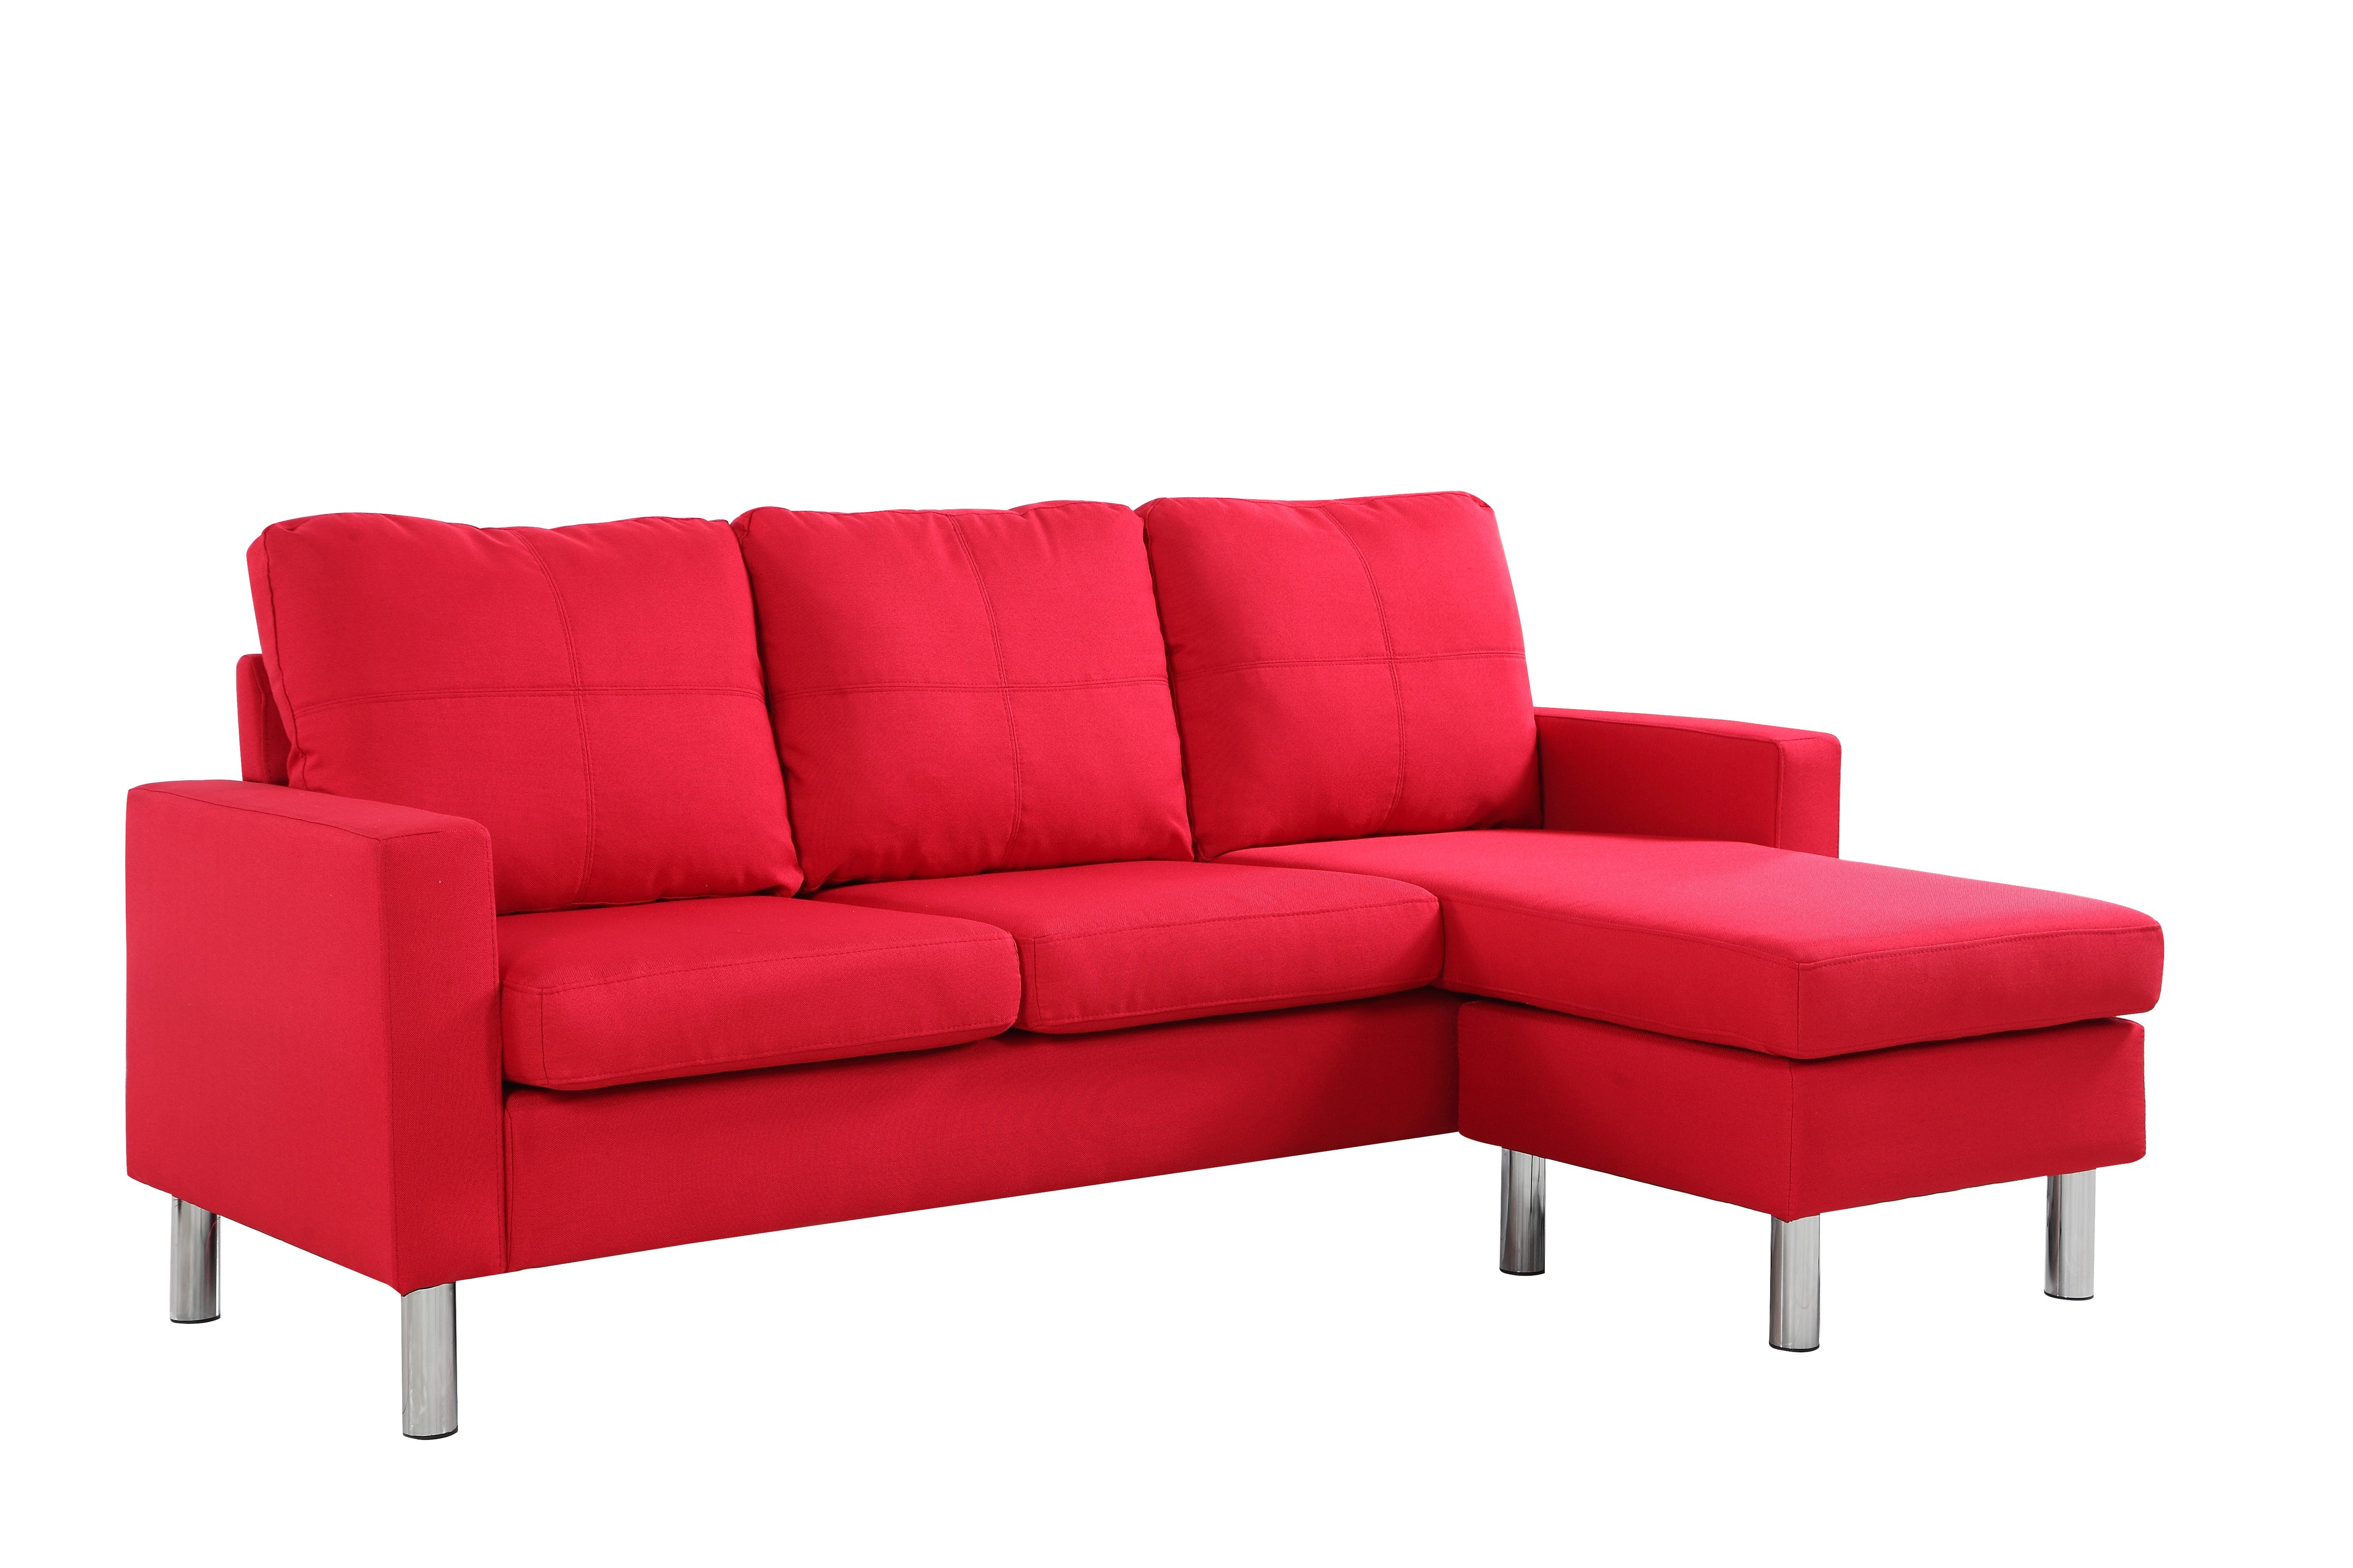 Modern Small Space Reversible Linen Fabric Sectional Sofa